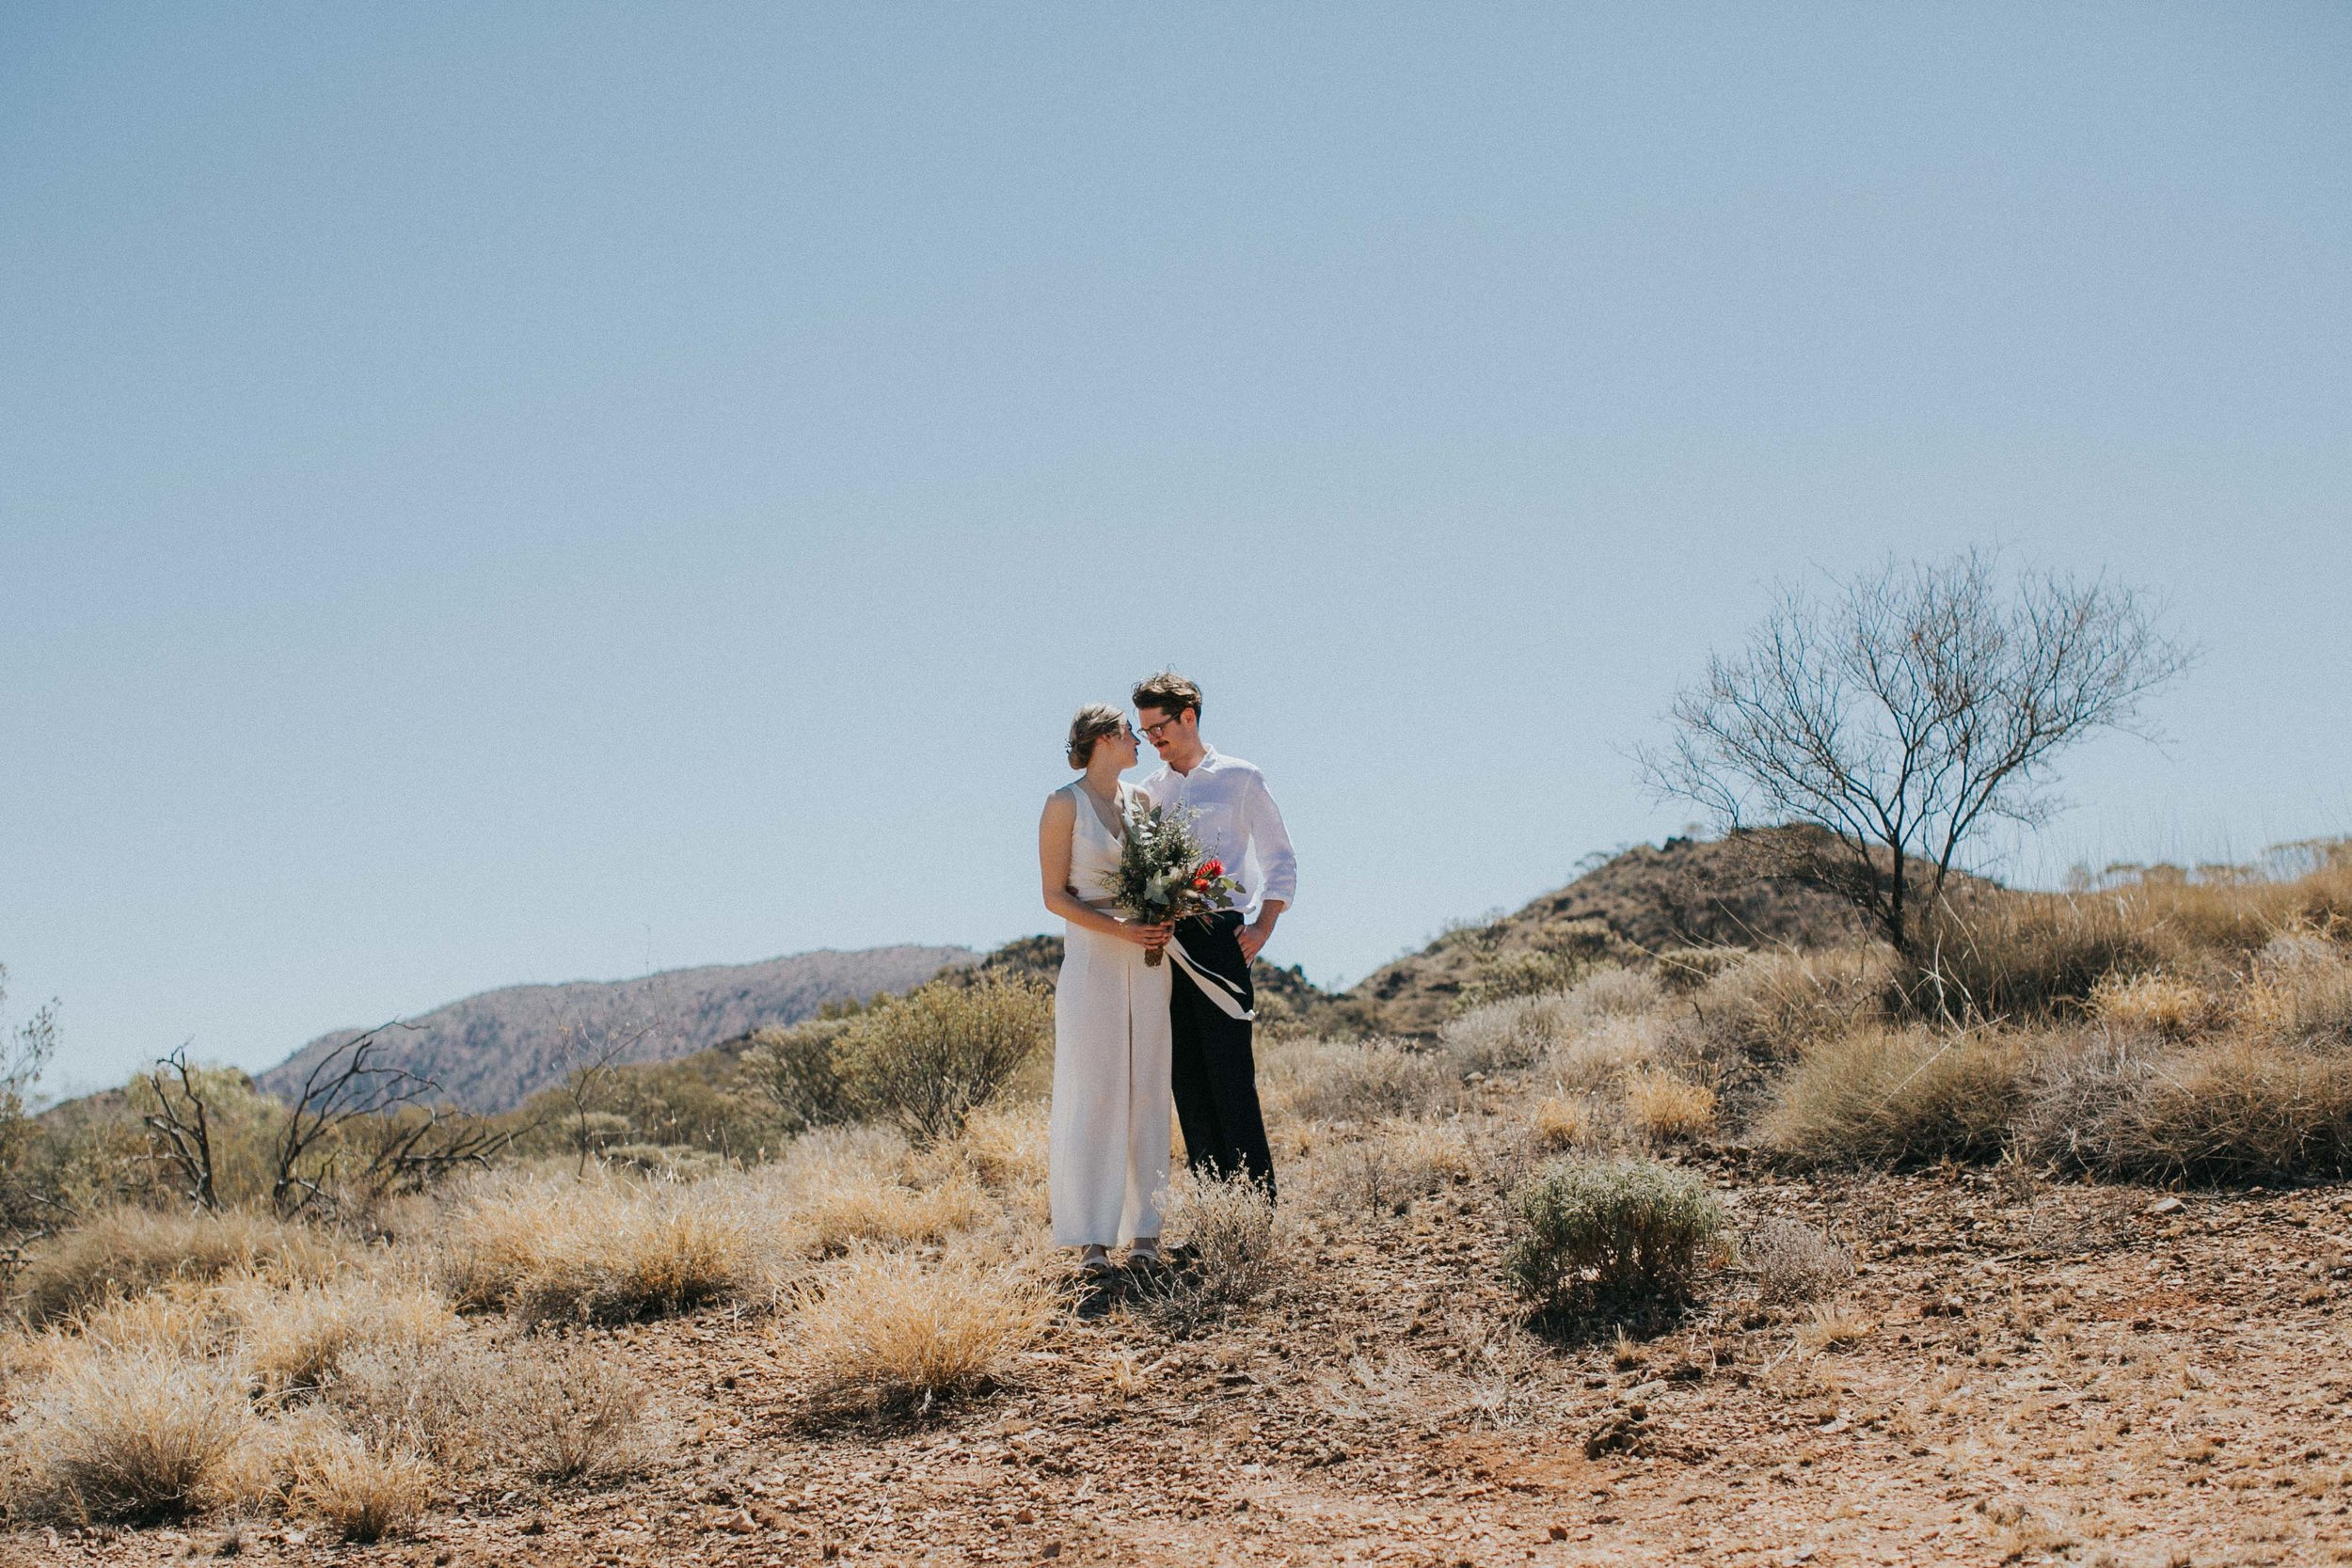 Elopement    Leaving the traditional behind and eloping? A coverage of up to four hours of getting ready, the ceremony and portraits.    $800